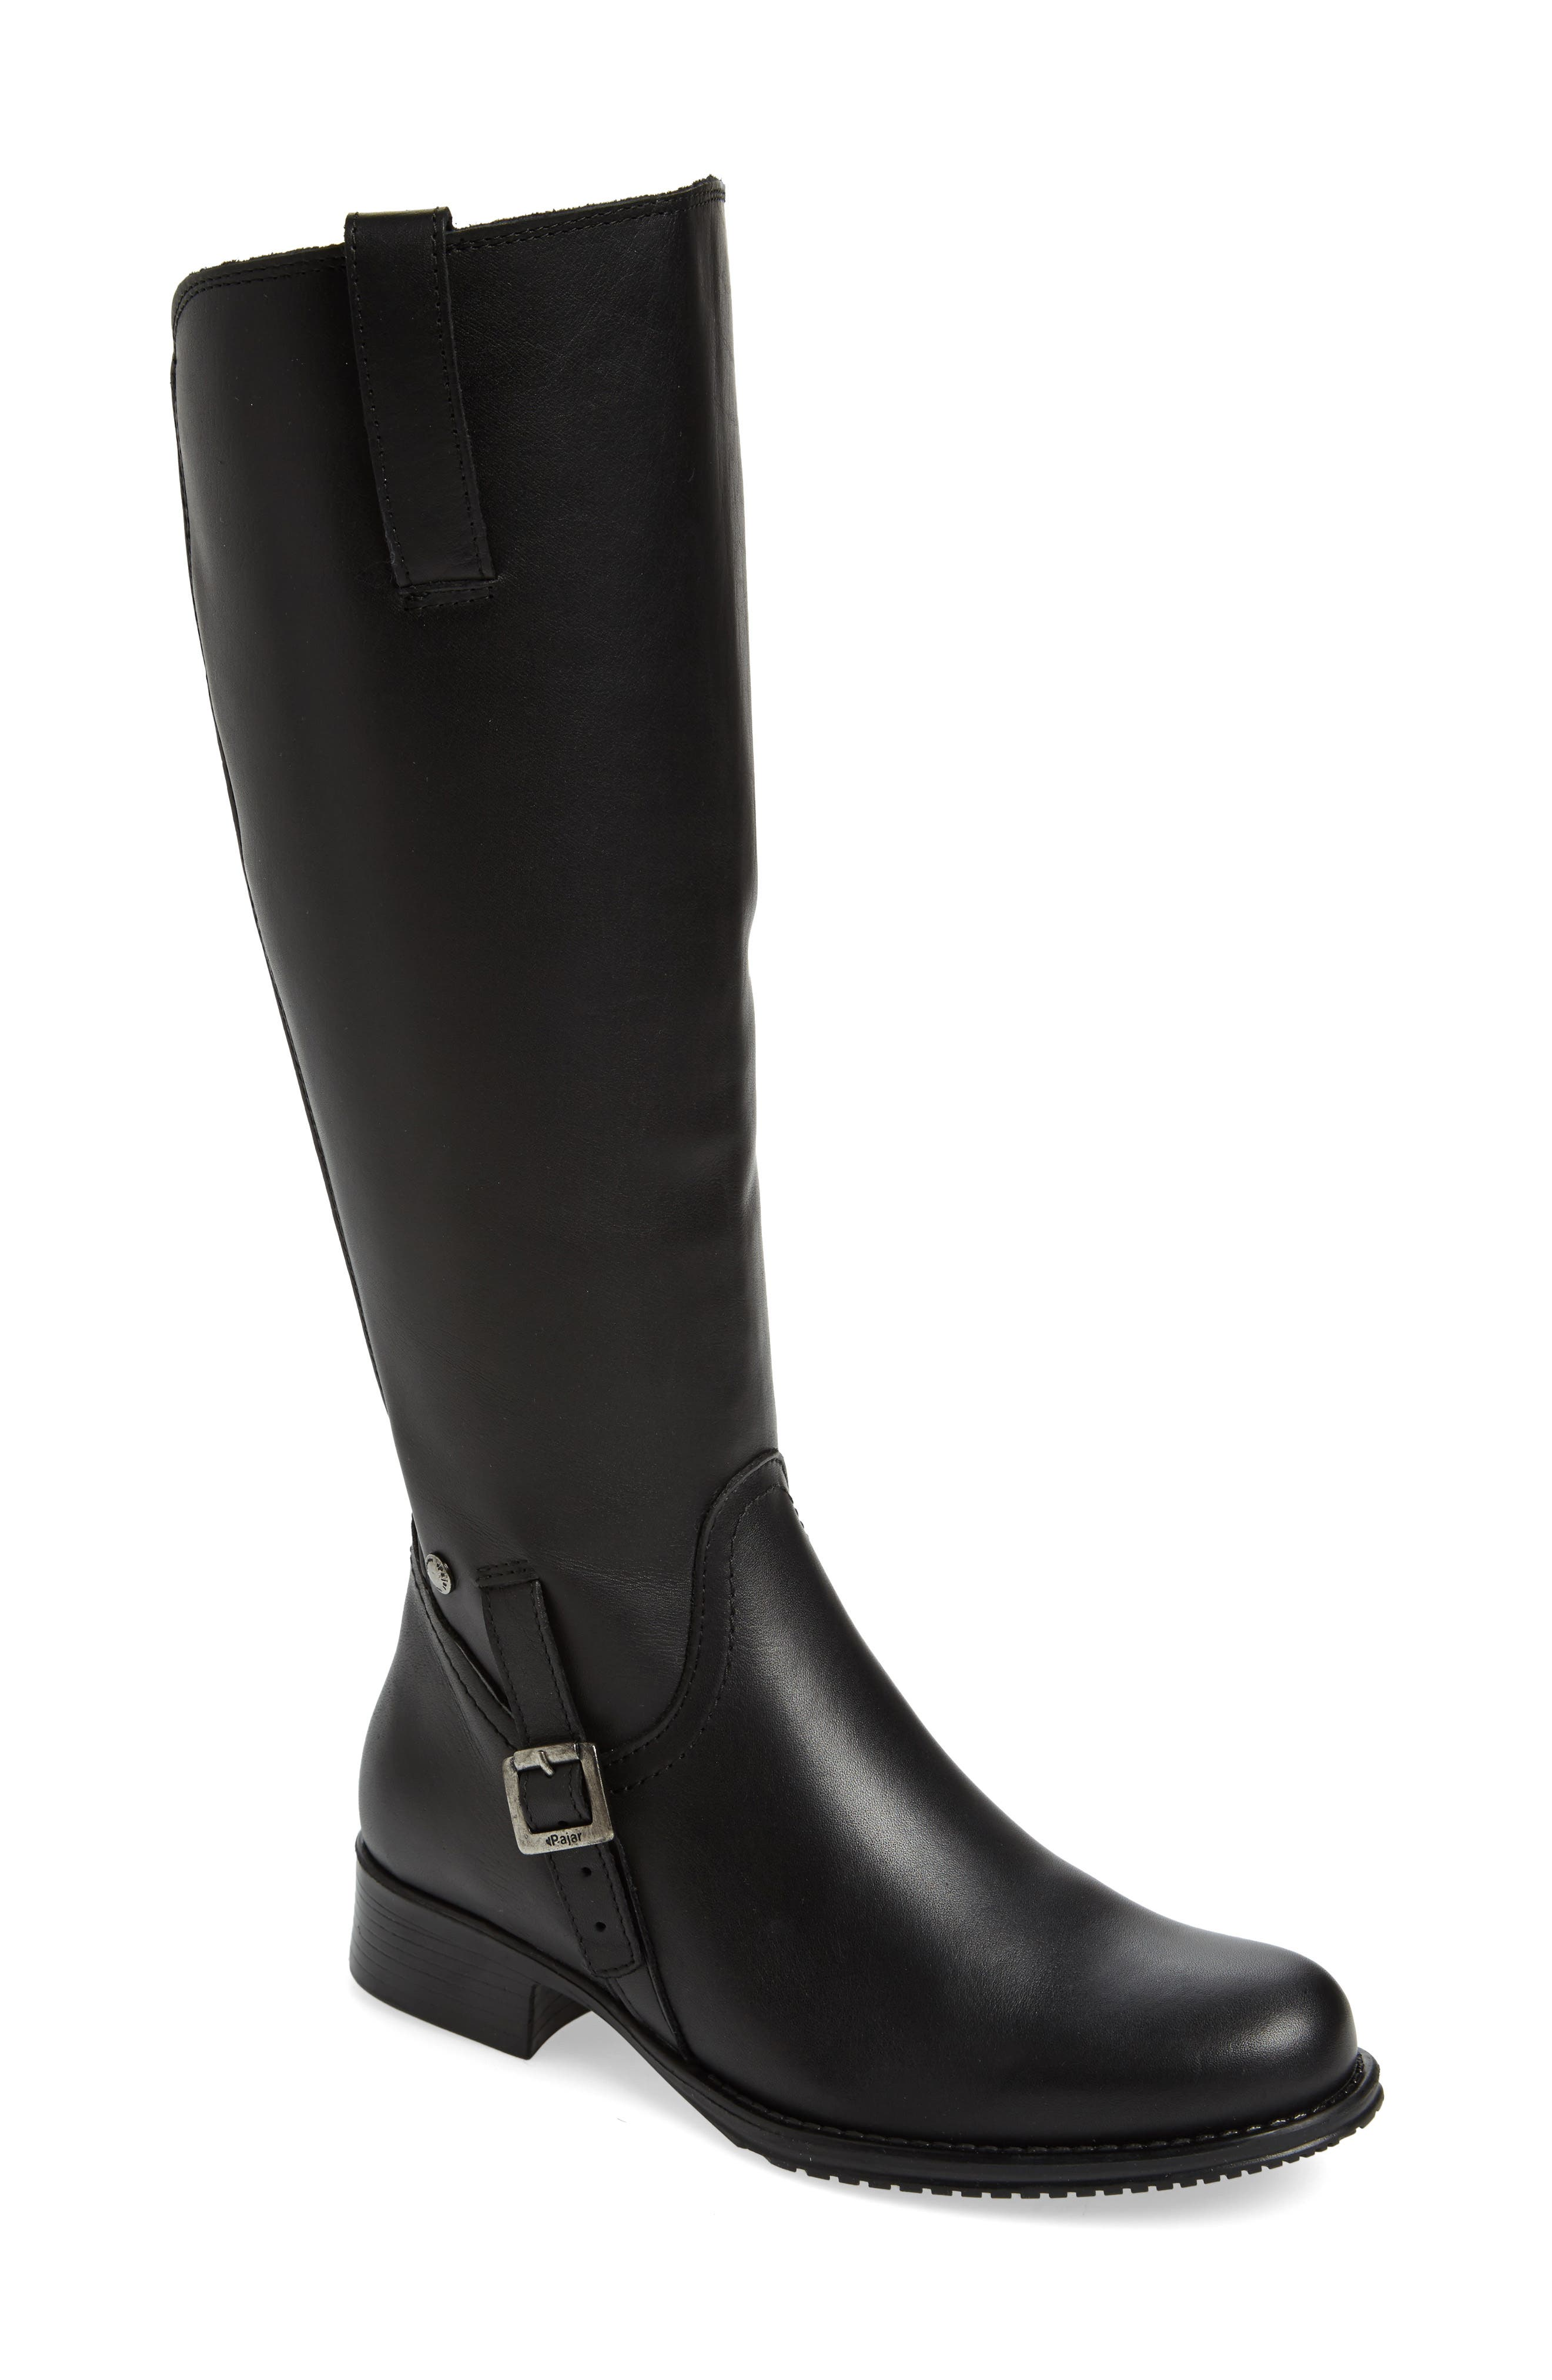 Dogueno Waterproof Boot,                         Main,                         color,